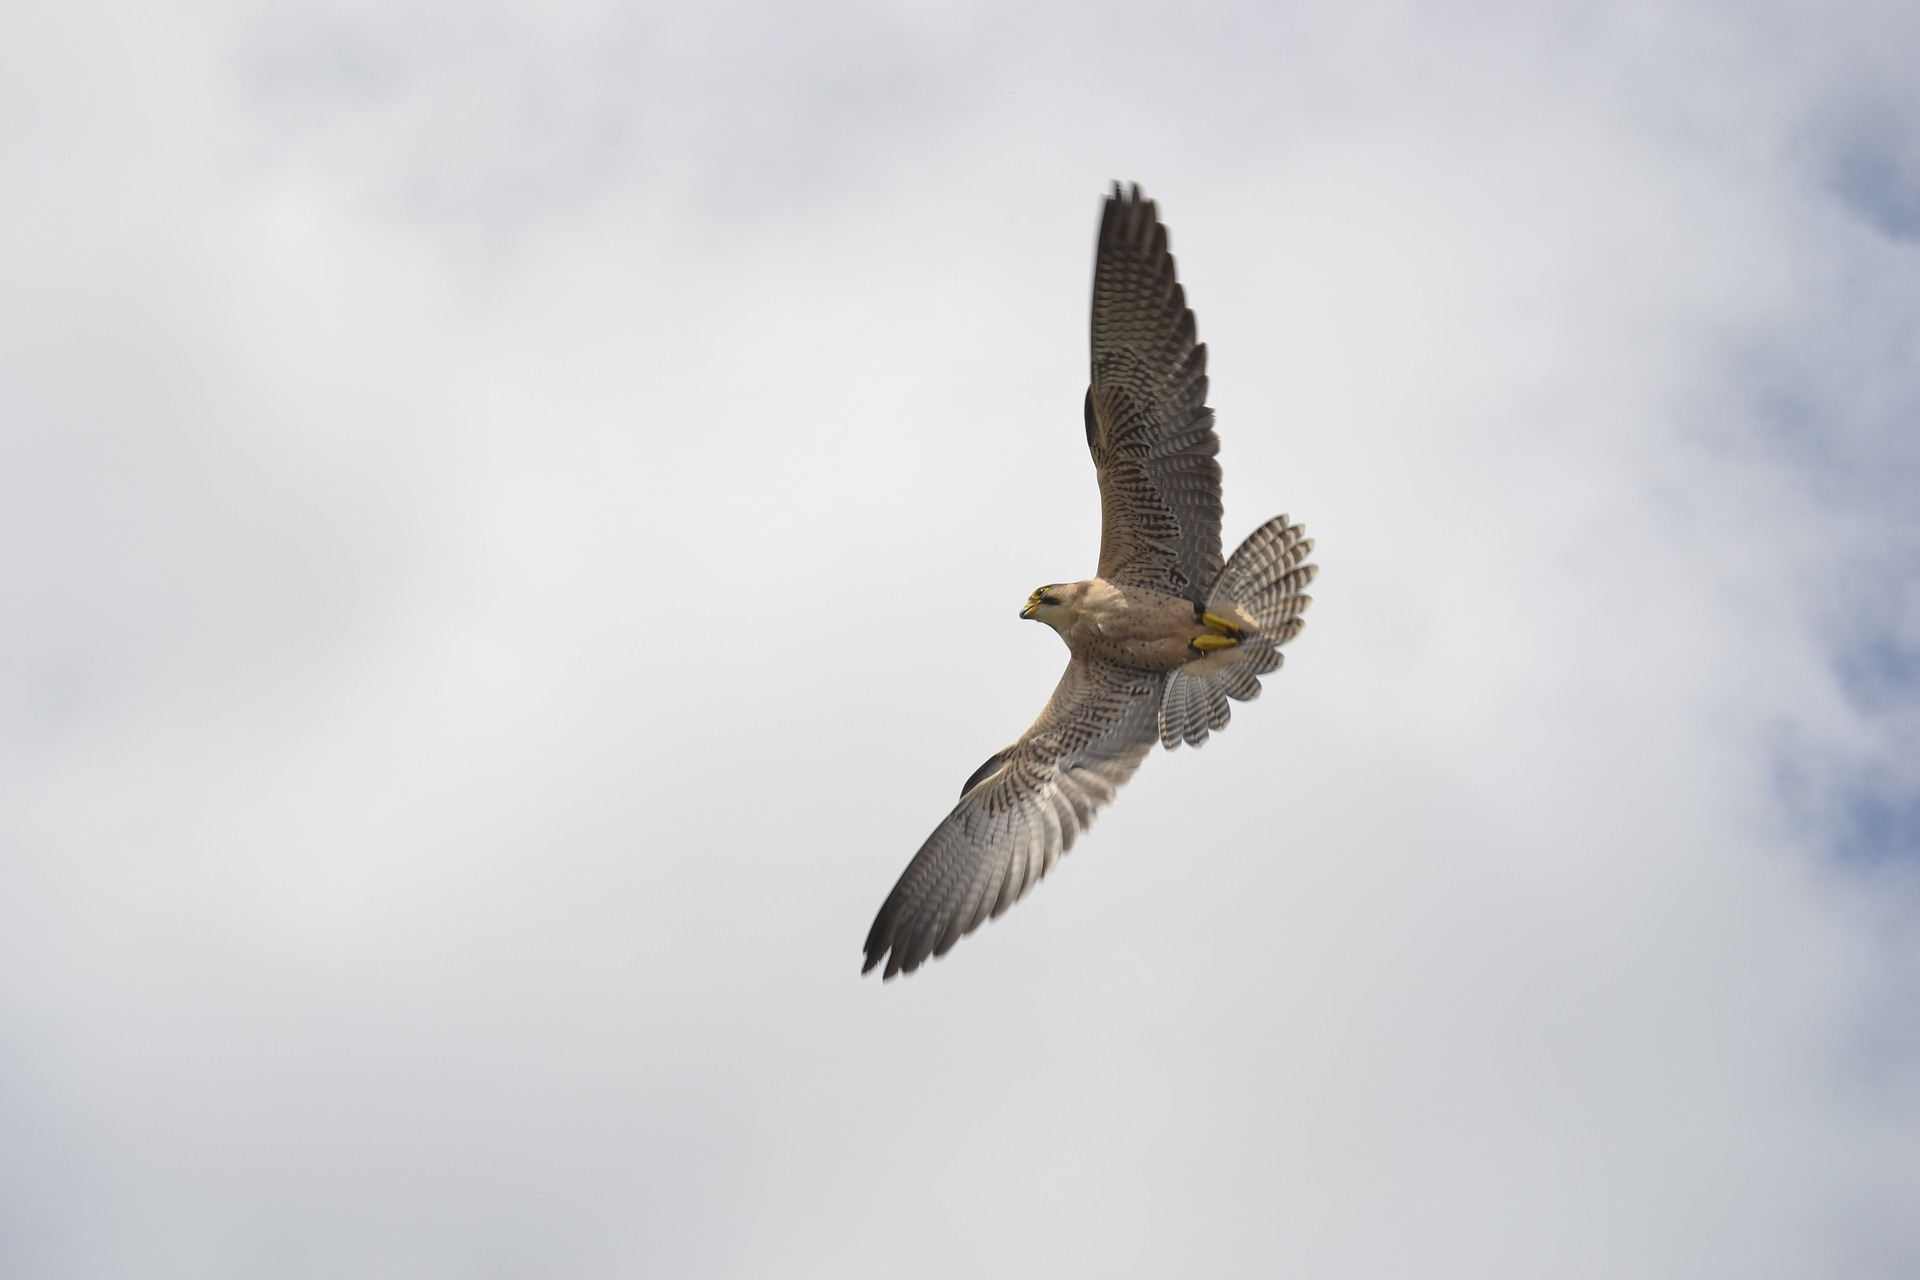 A peregrine falcon on the attack. By imitating the strategies of these powerful birds, the Air Force hopes to create bio-mimicking drone defense systems.